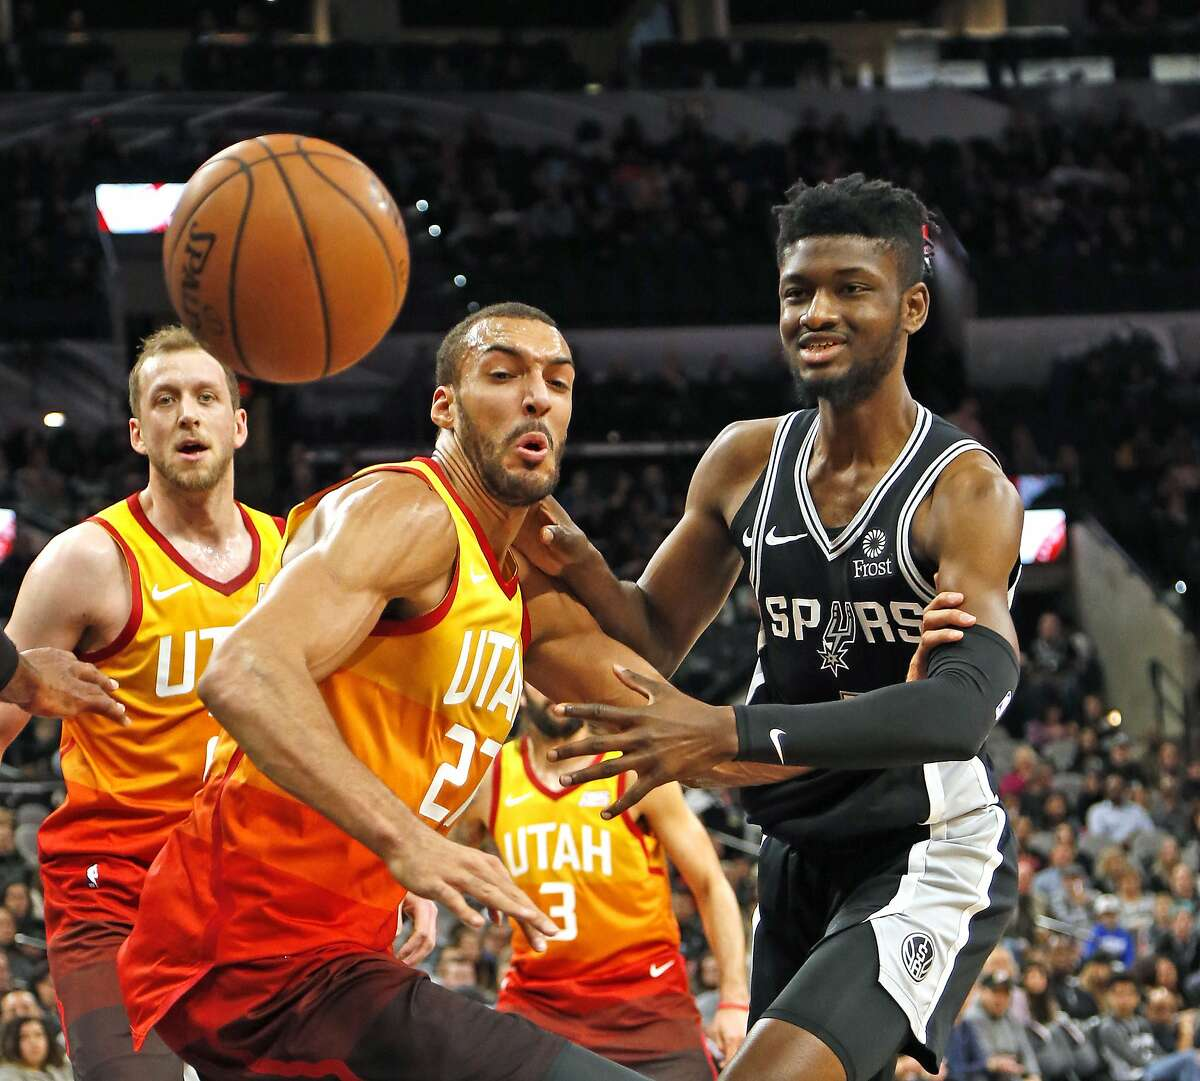 Chimezie Metu #7 of the San Antonio Spurs and Rudy Gobert #27 of the Utah Jazz watch the ball go out of bounds. Utah Jazz v San Antonio Spurs on Sunday, December 9, 2018 at the AT&T Center.